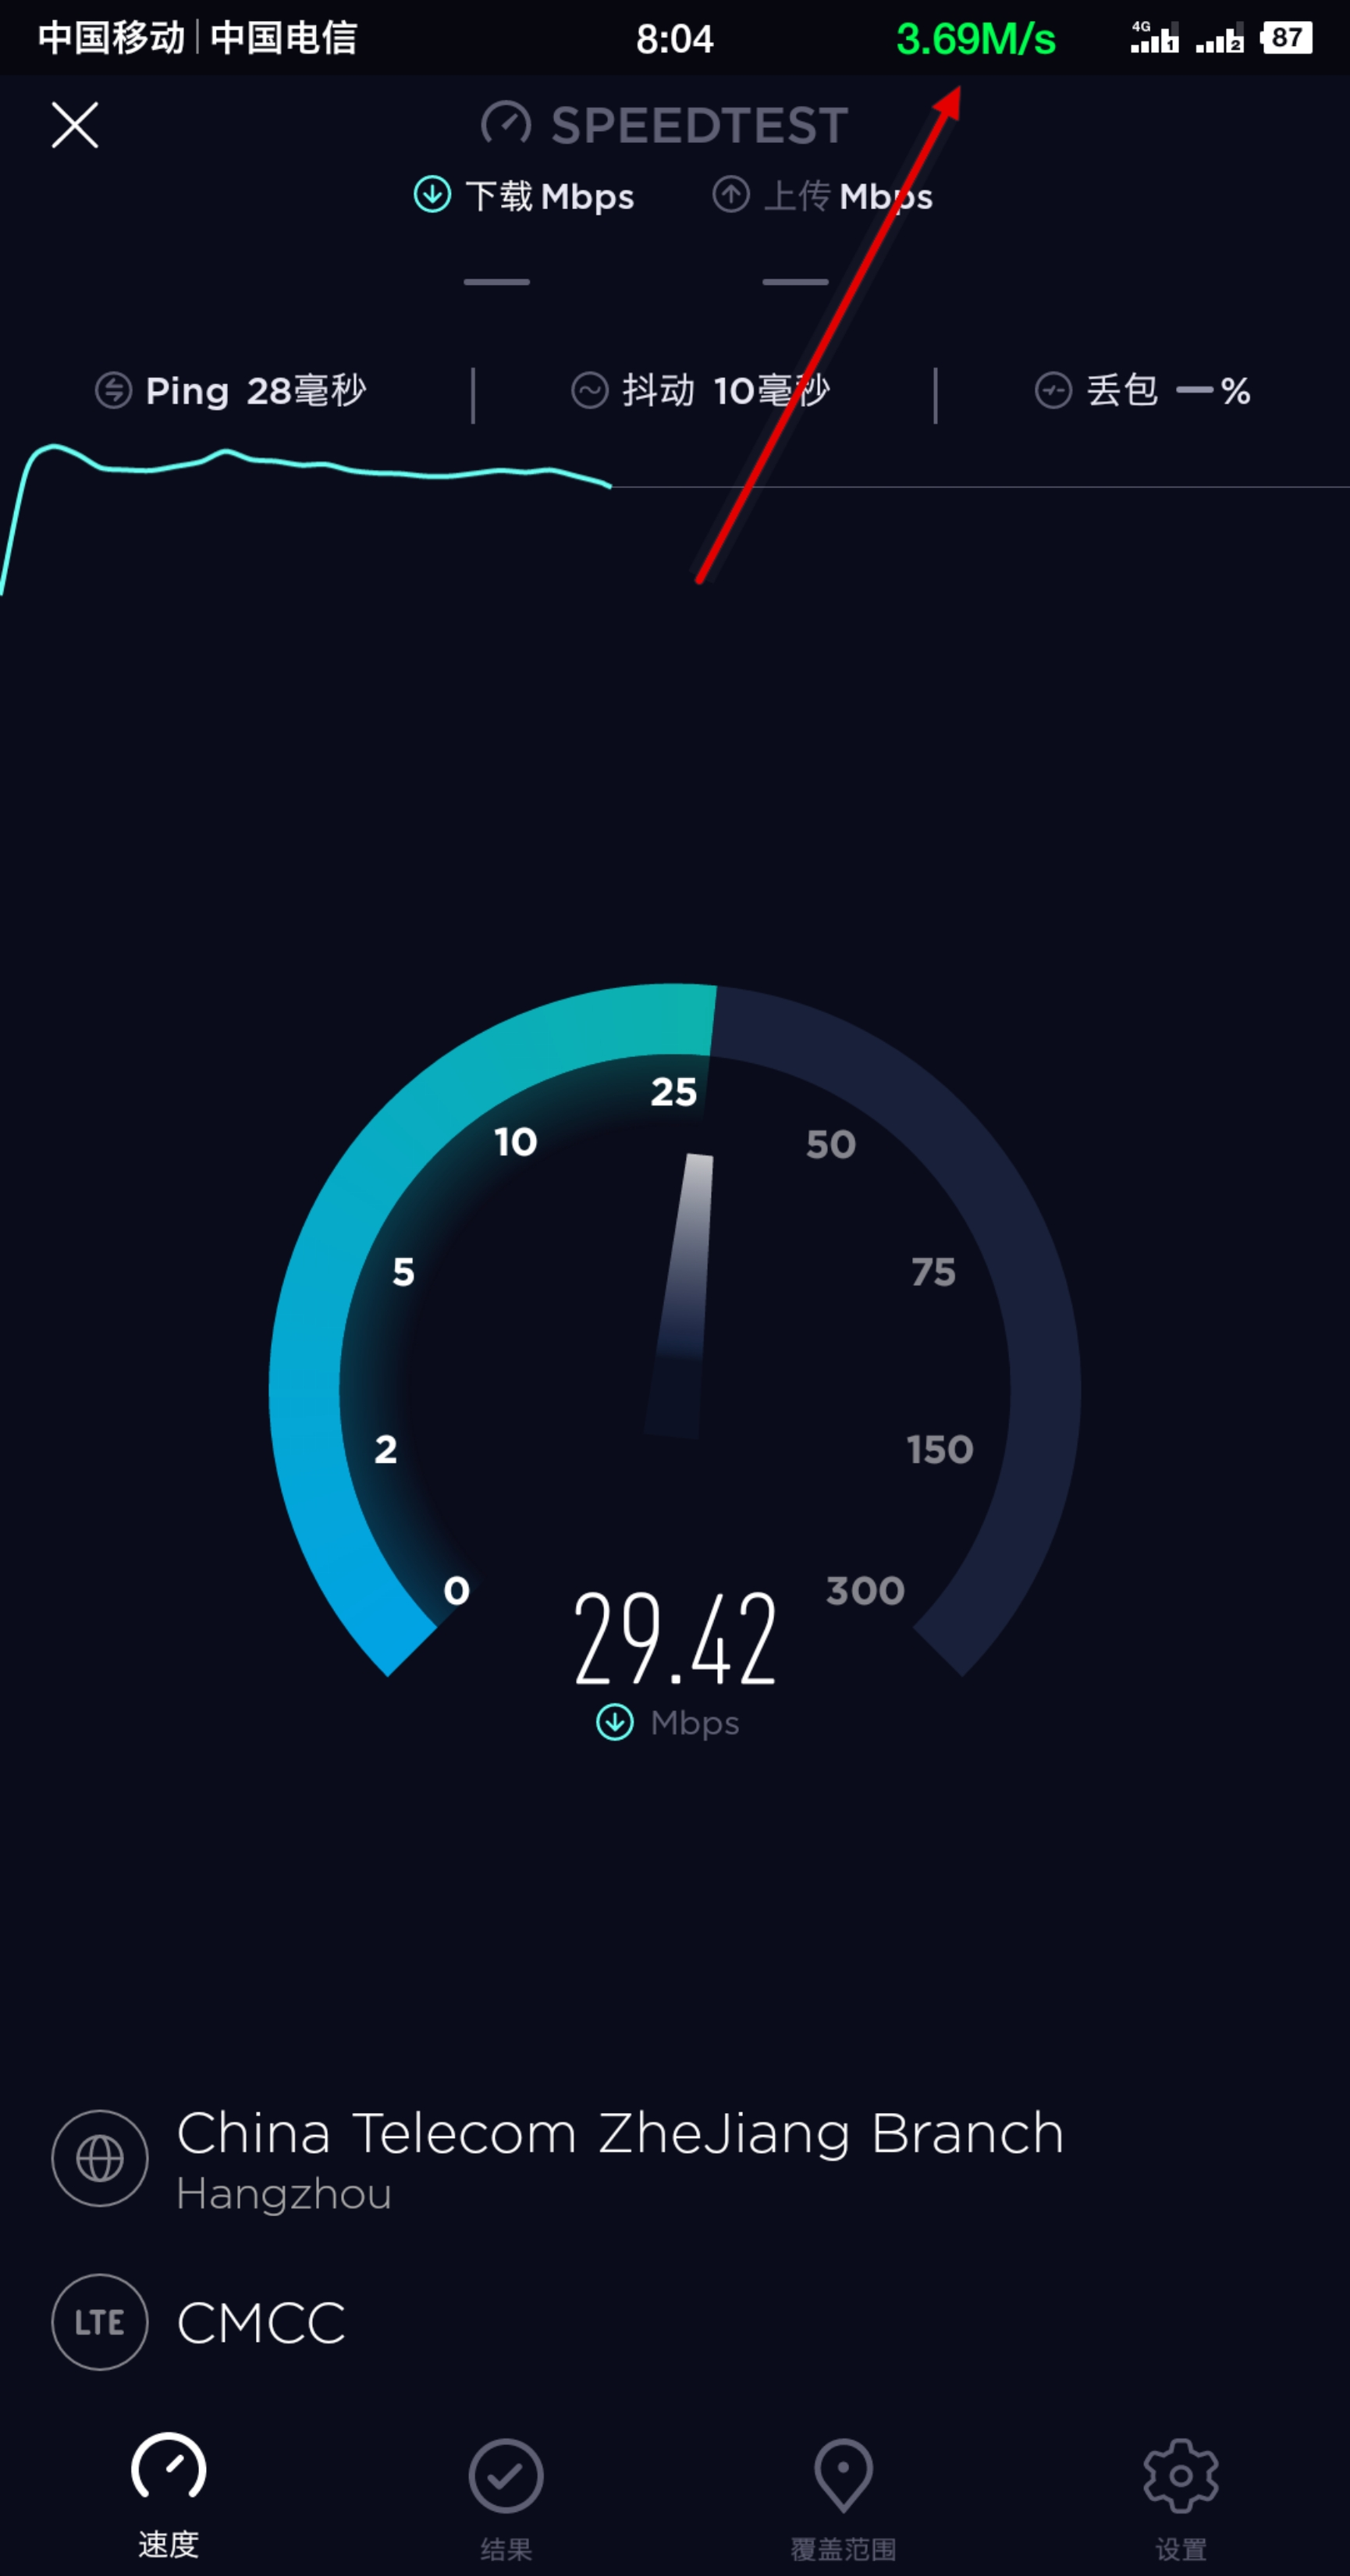 ??_Screenshot_2018-12-31-08-04-48-440_Speedtest.png